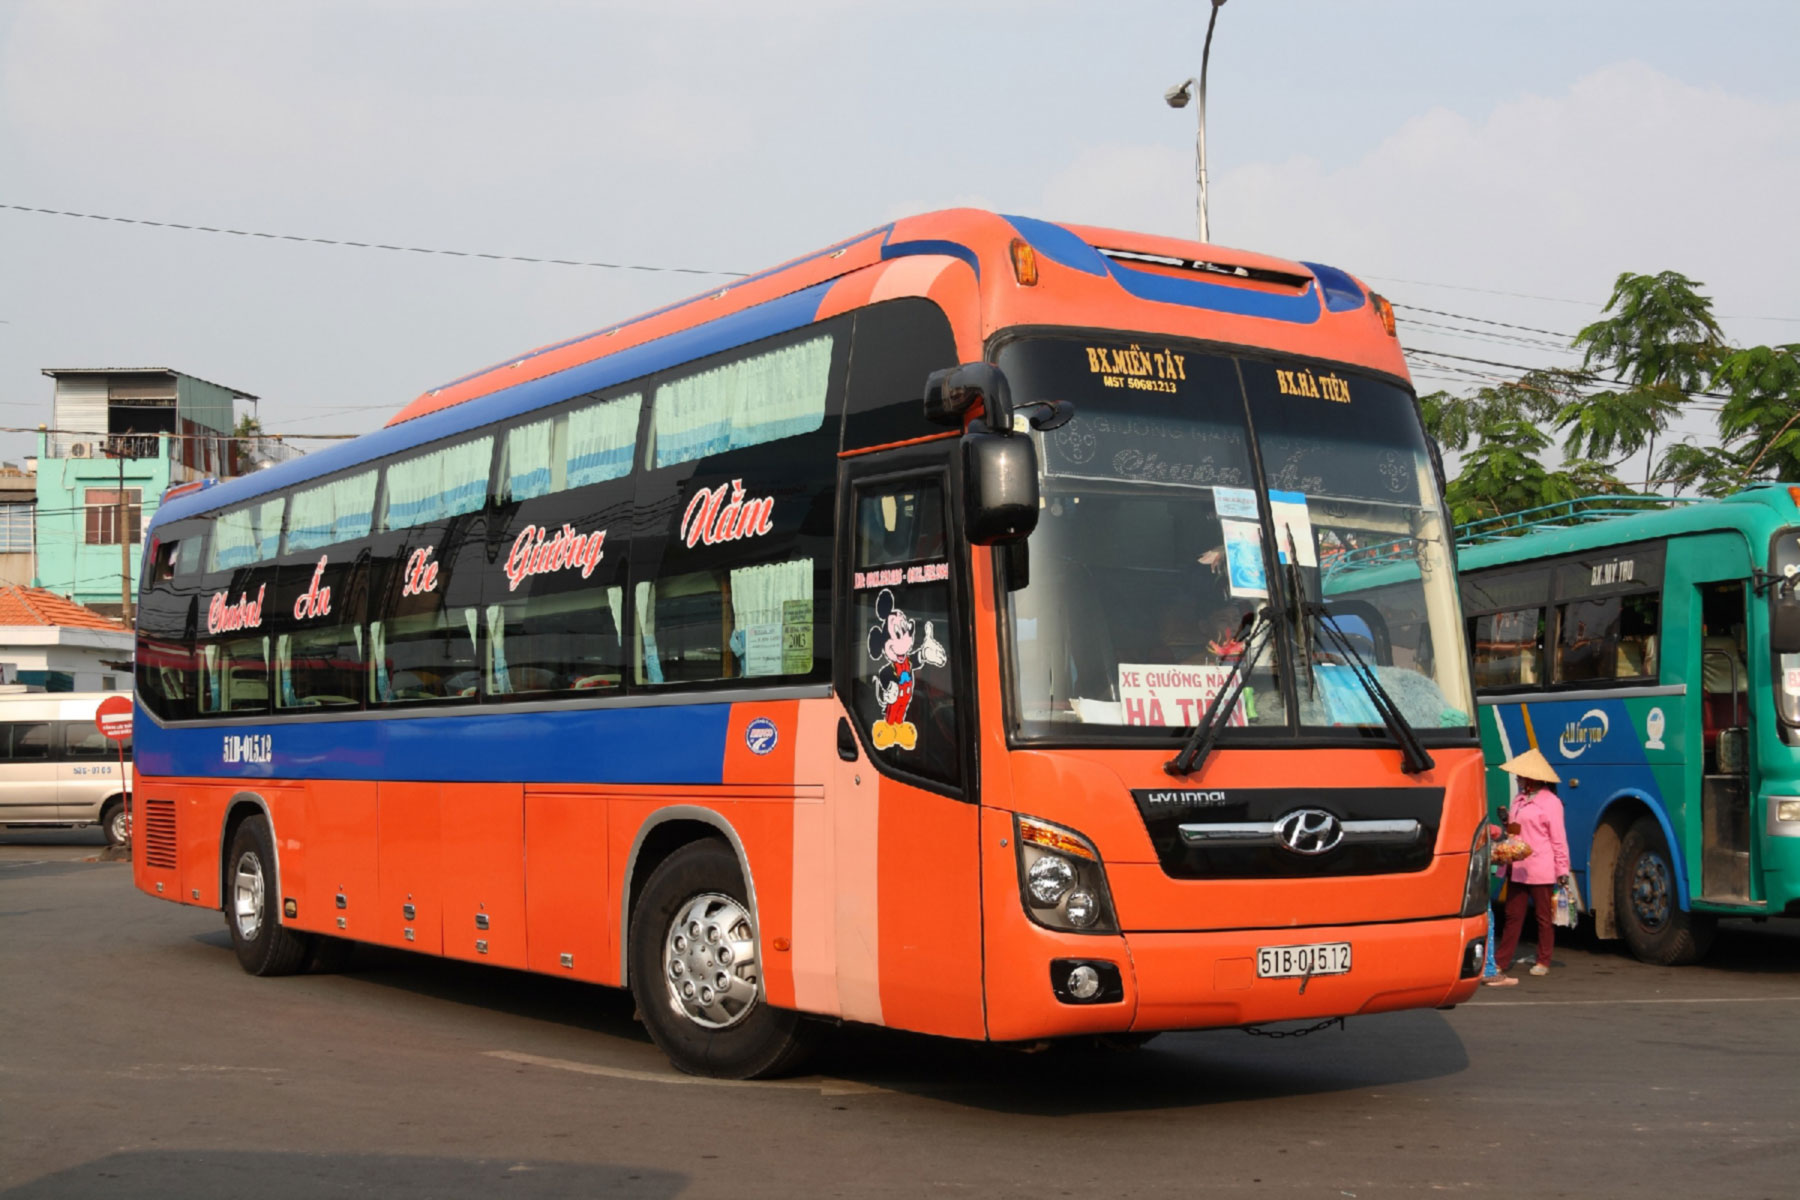 Vietnam Transportation: How to Use the Open Bus Ticket in Vietnam | Lily's Travel & Tours